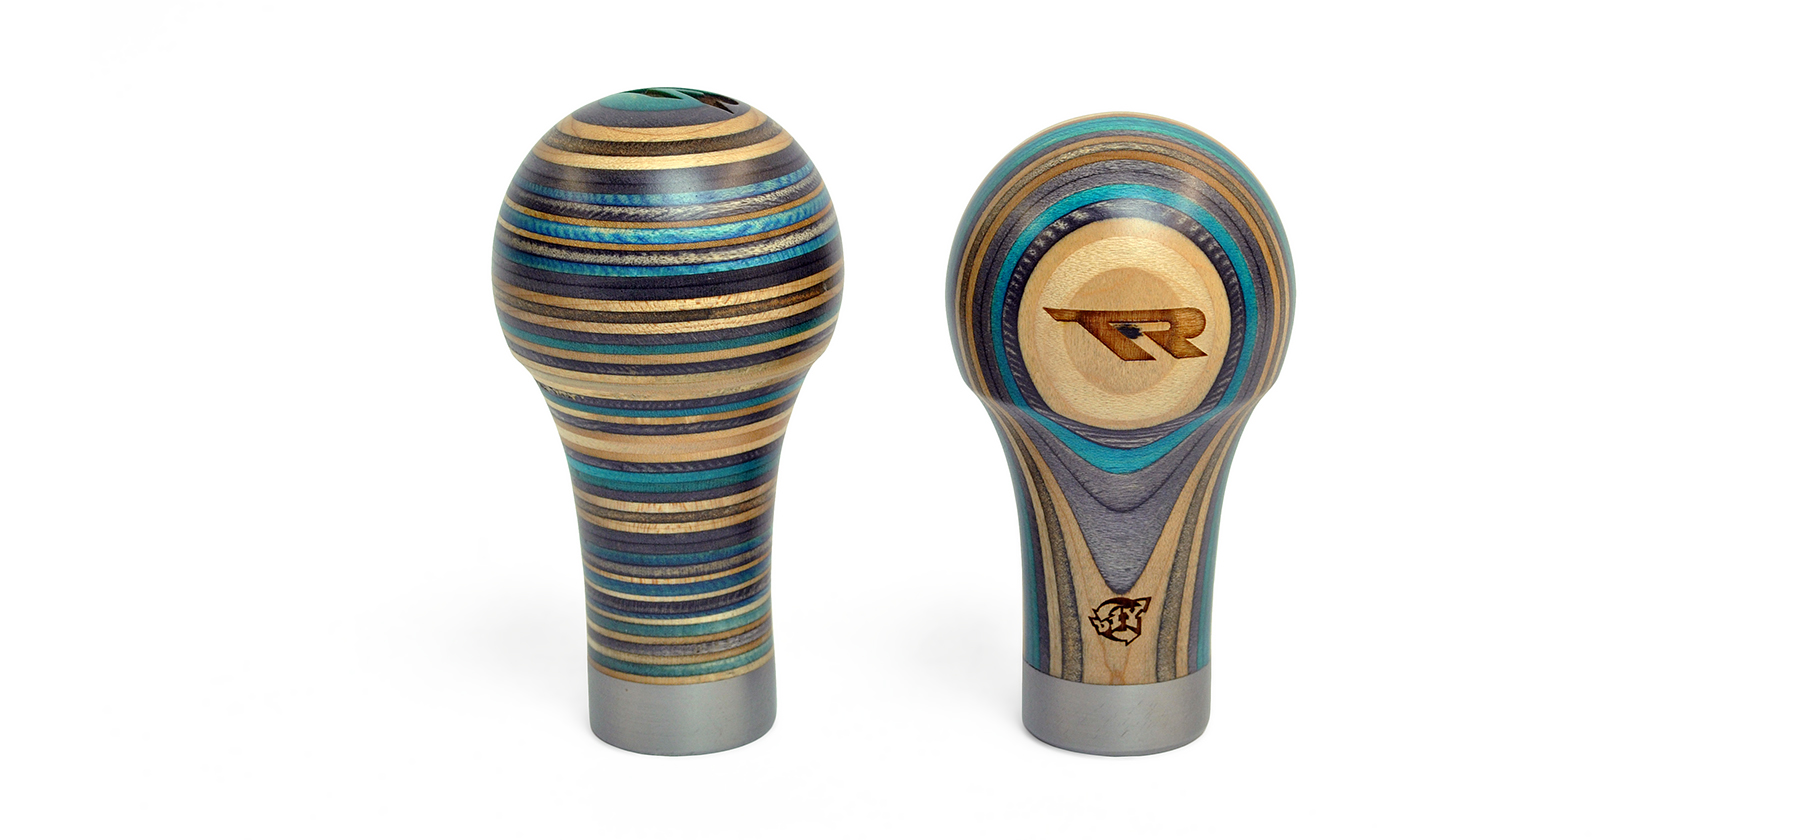 TR weighted shift knobs